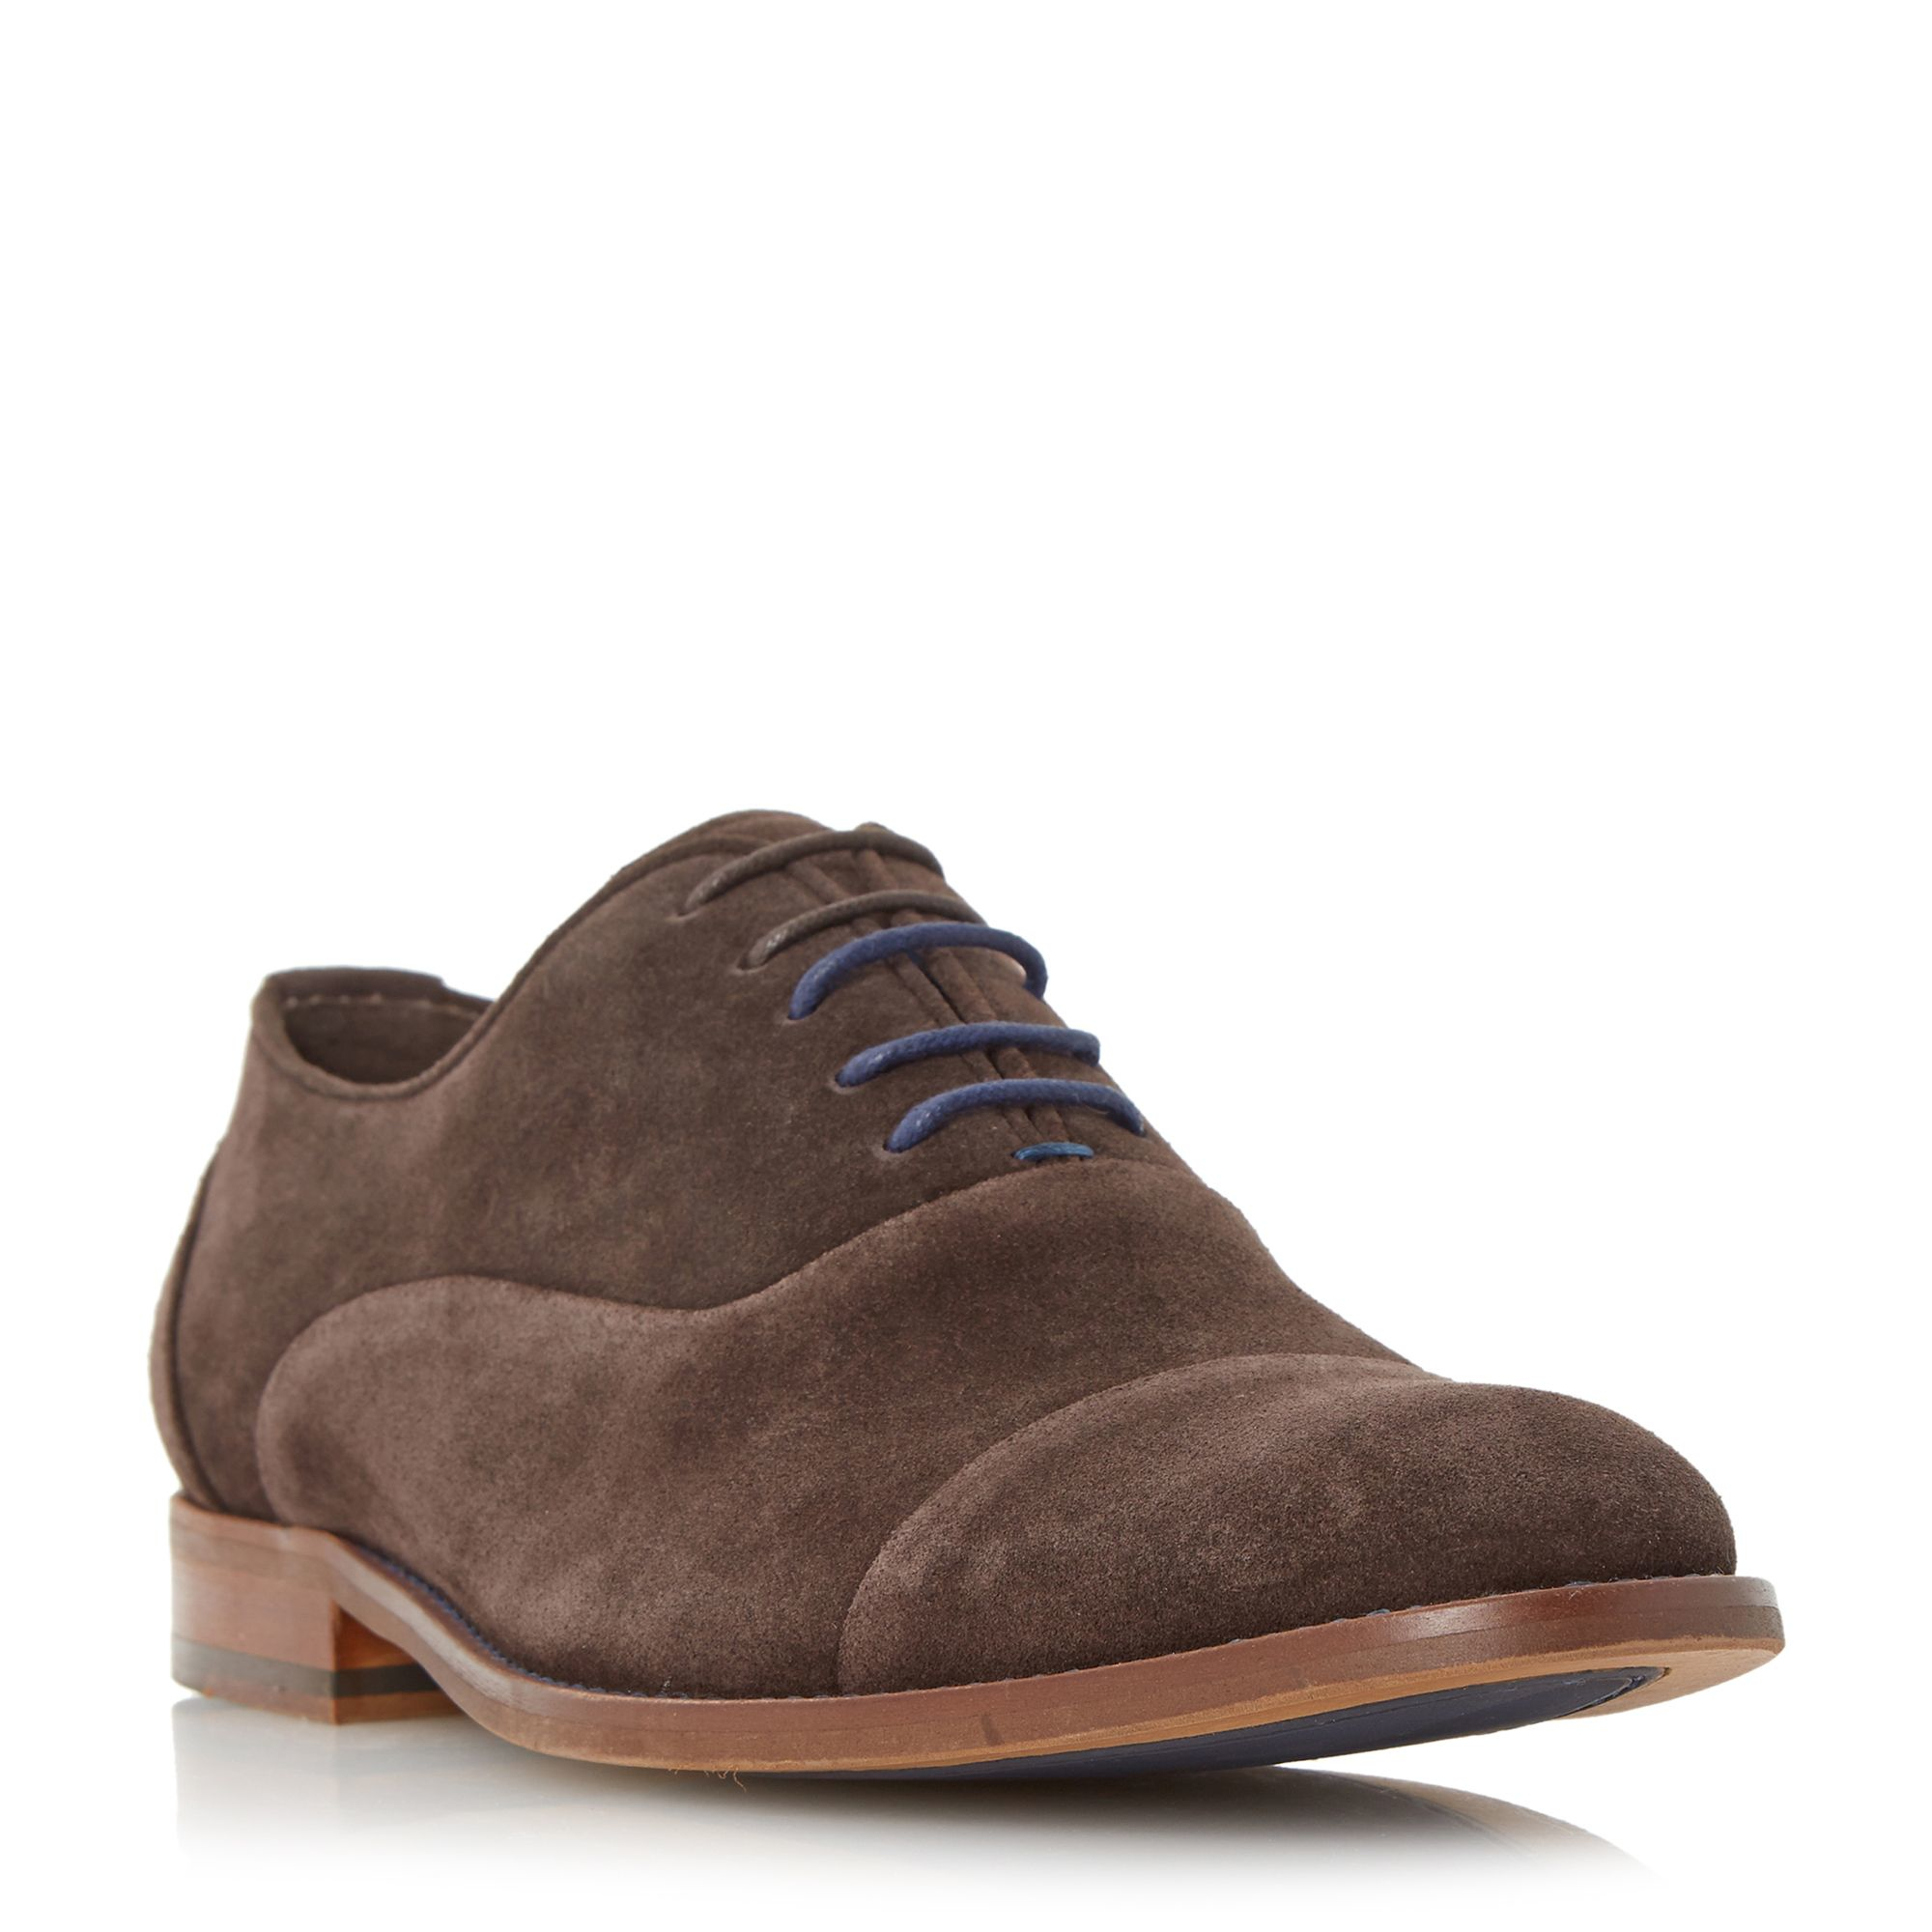 Dune Lace Up Shoes For Men